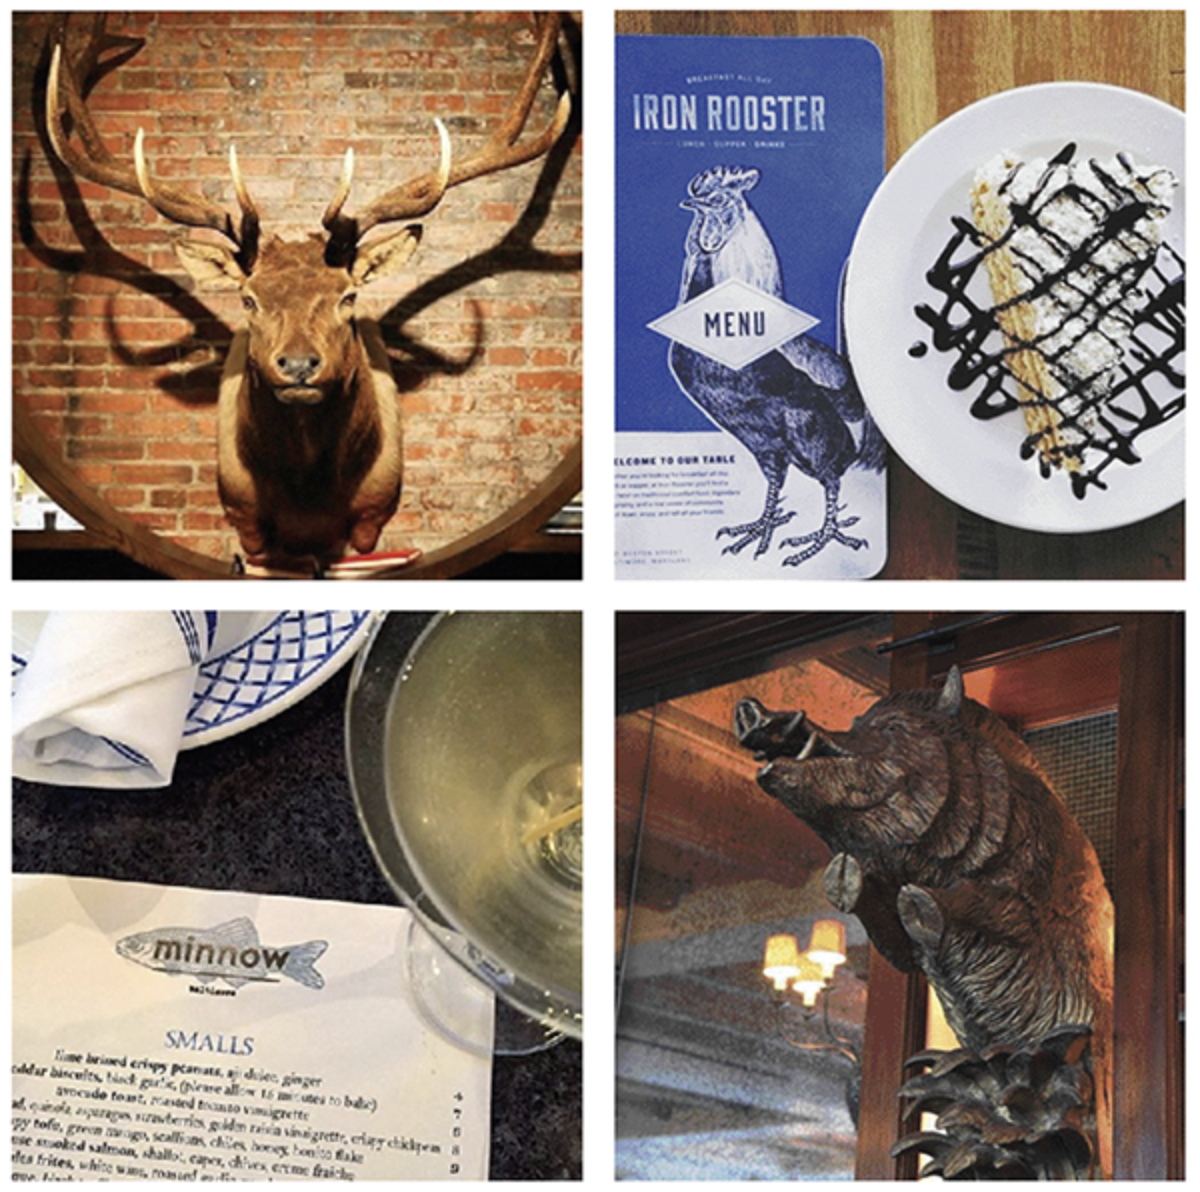 15 Animal-Inspired Eateries